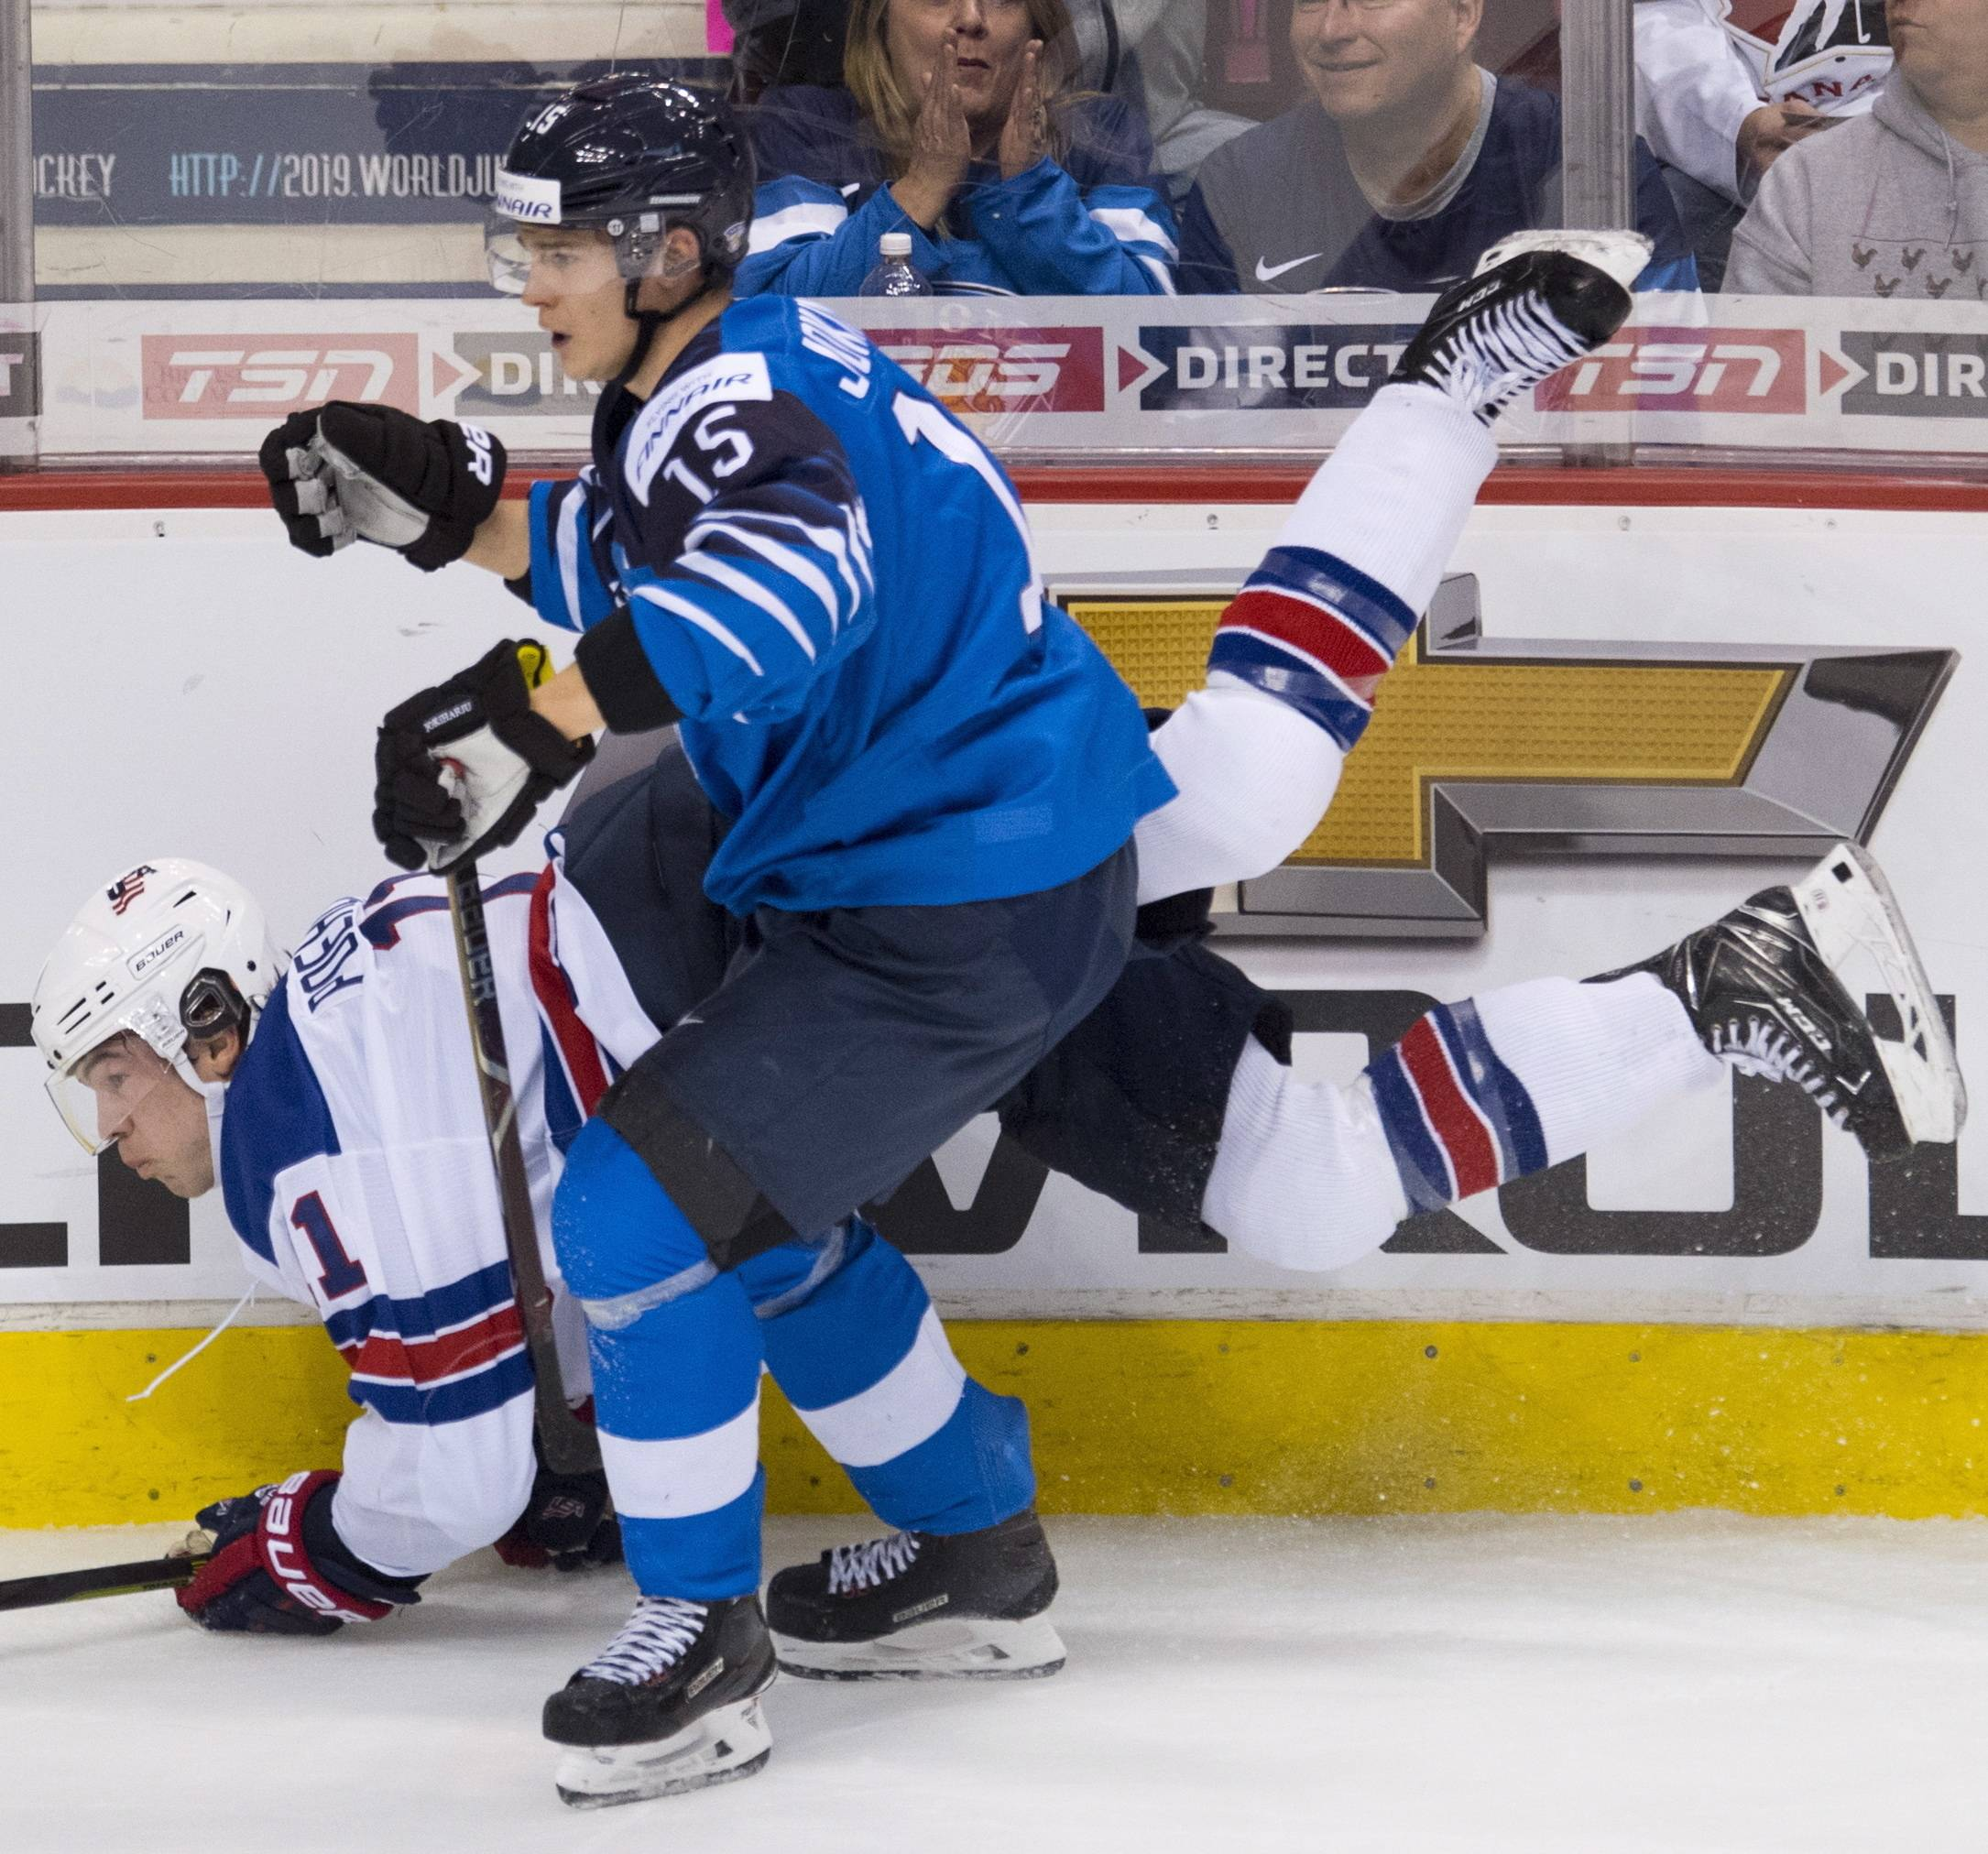 United States' Ryan Poehling goes into the boards with Finland's Henri Jokiharju during the first period of the gold medal game at the world junior hockey tournament, Saturday, Jan. 5, 2019 in Vancouver, British Columbia.